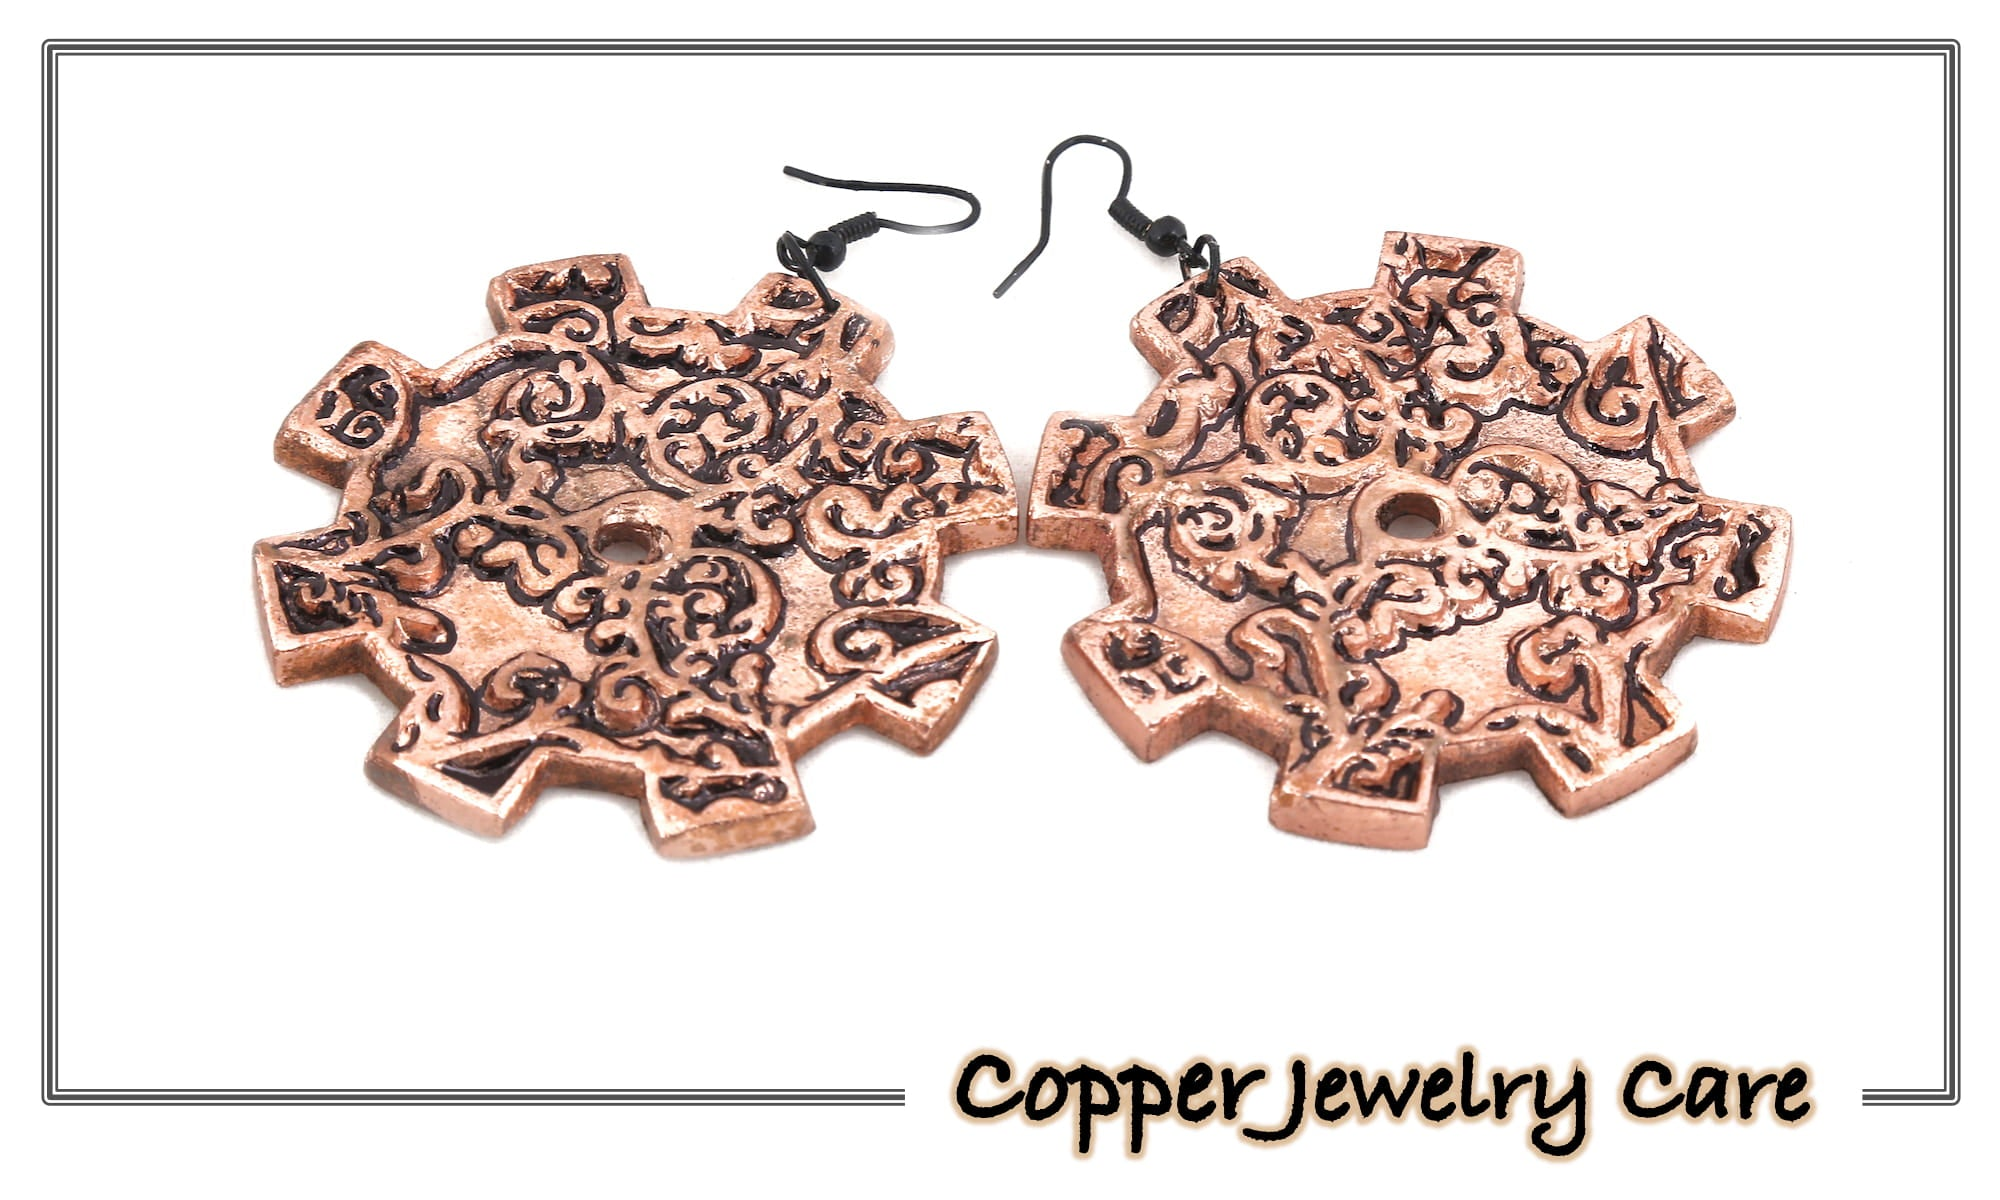 Clean, Care & Store Your Copper Jewelry